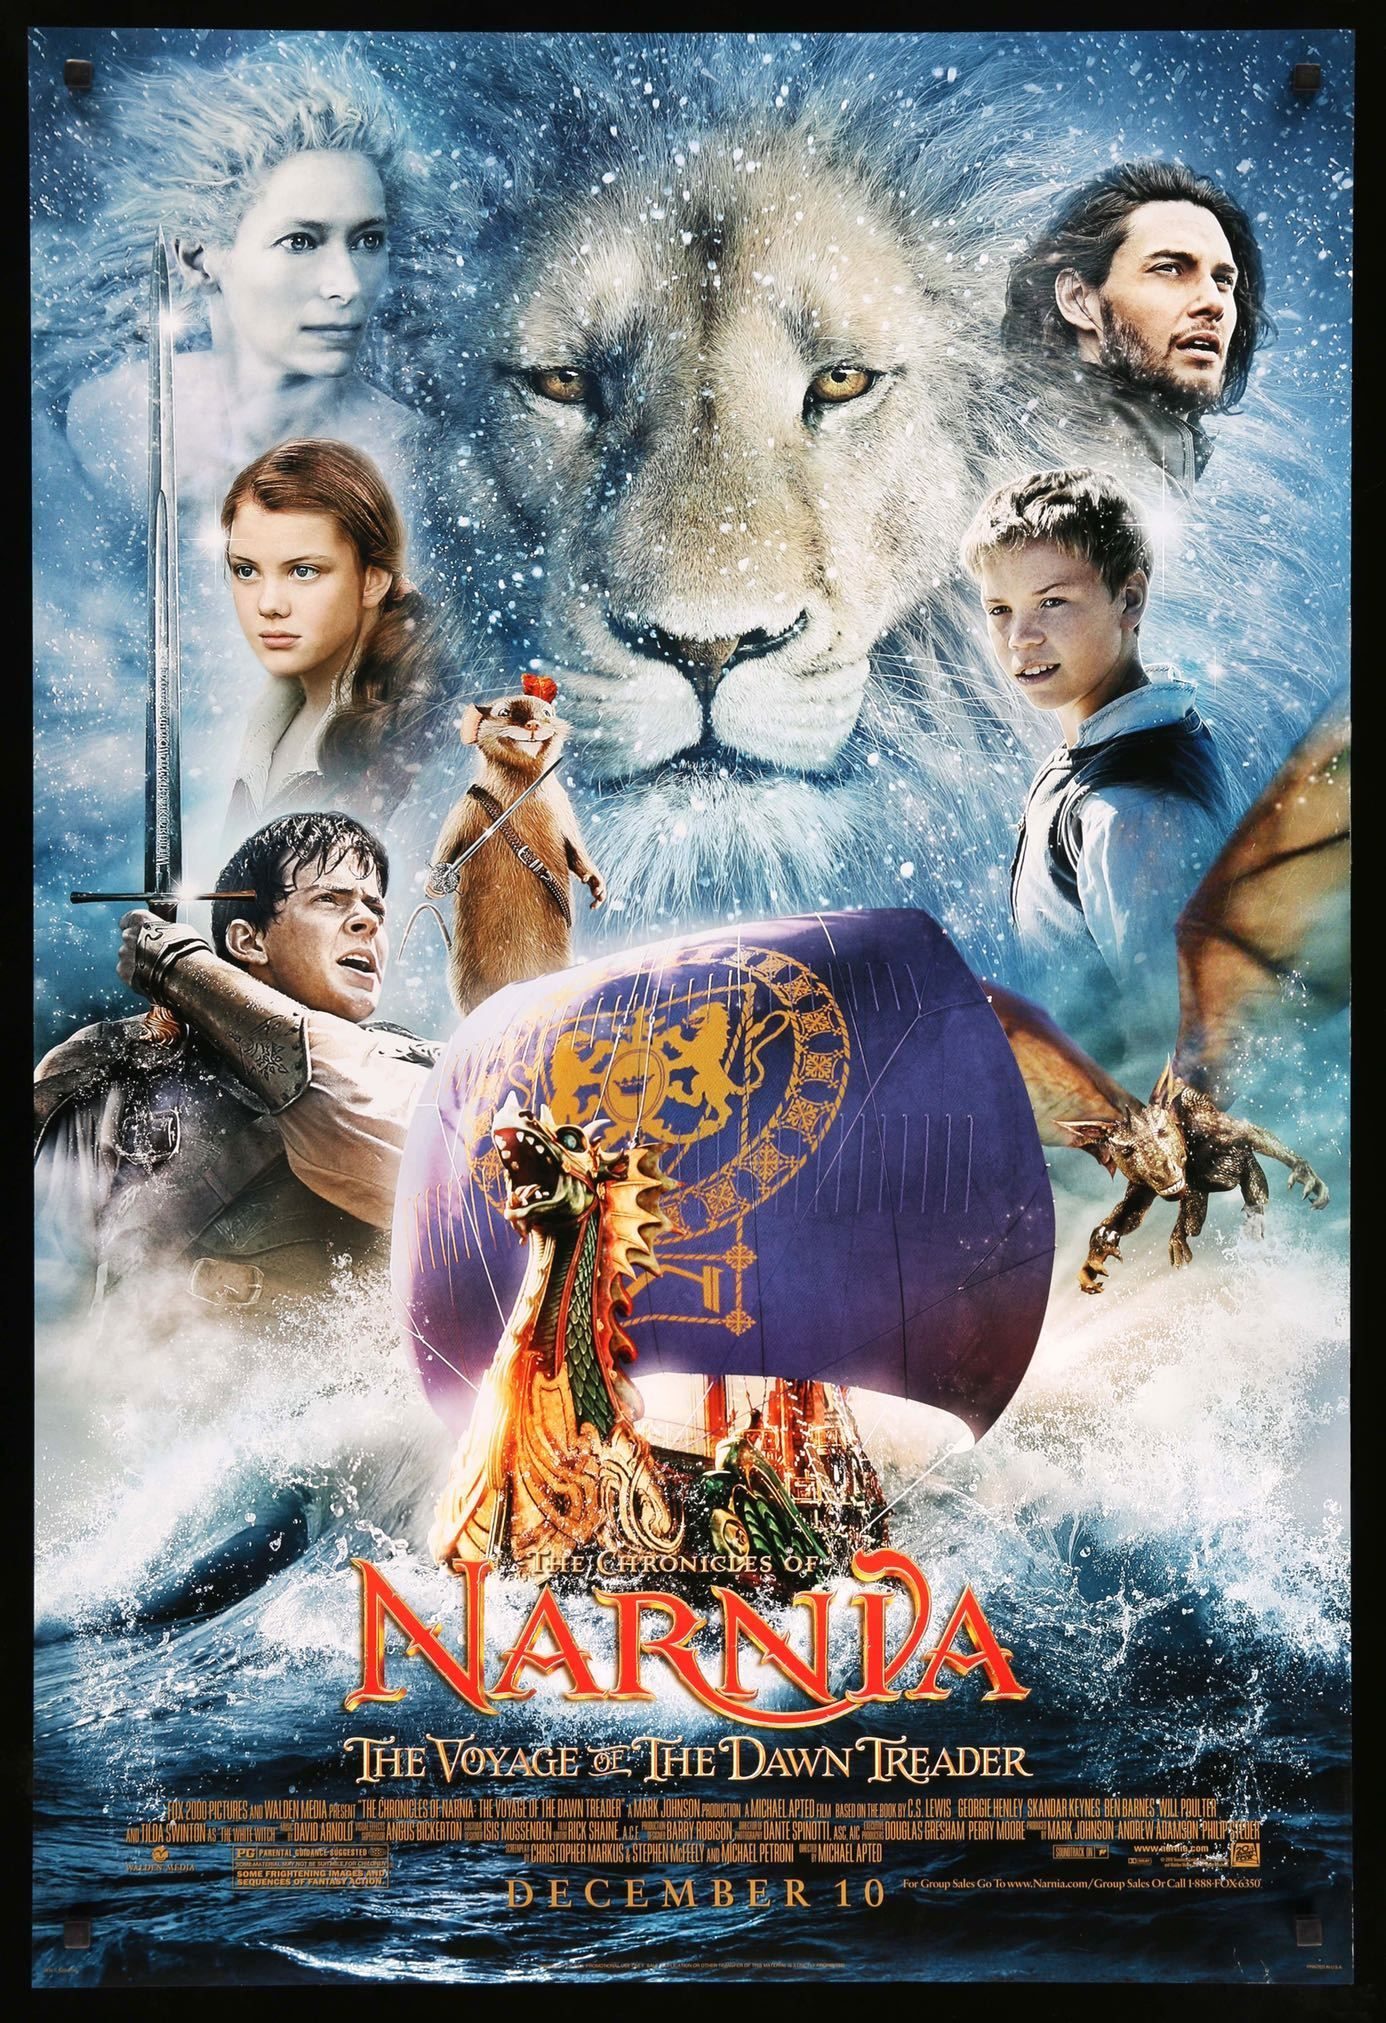 Chronicles of Narnia The Voyage of the Dawn Treader (2010